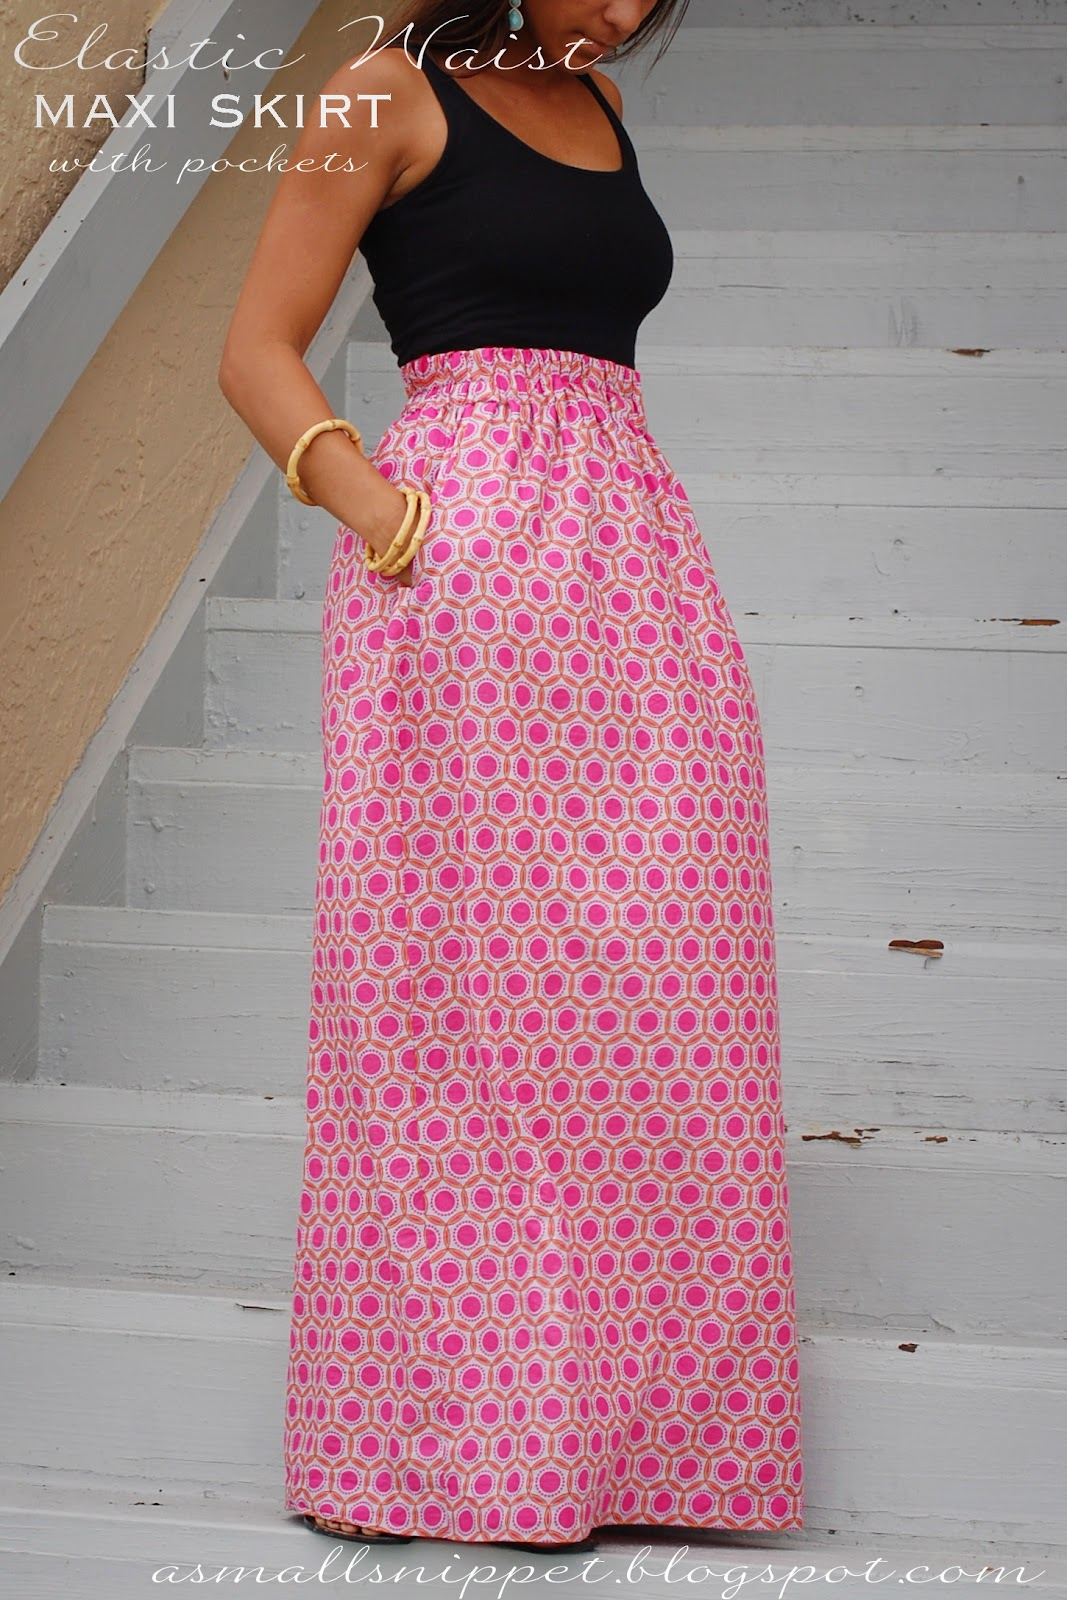 maxi skirt with pockets sewing pattern